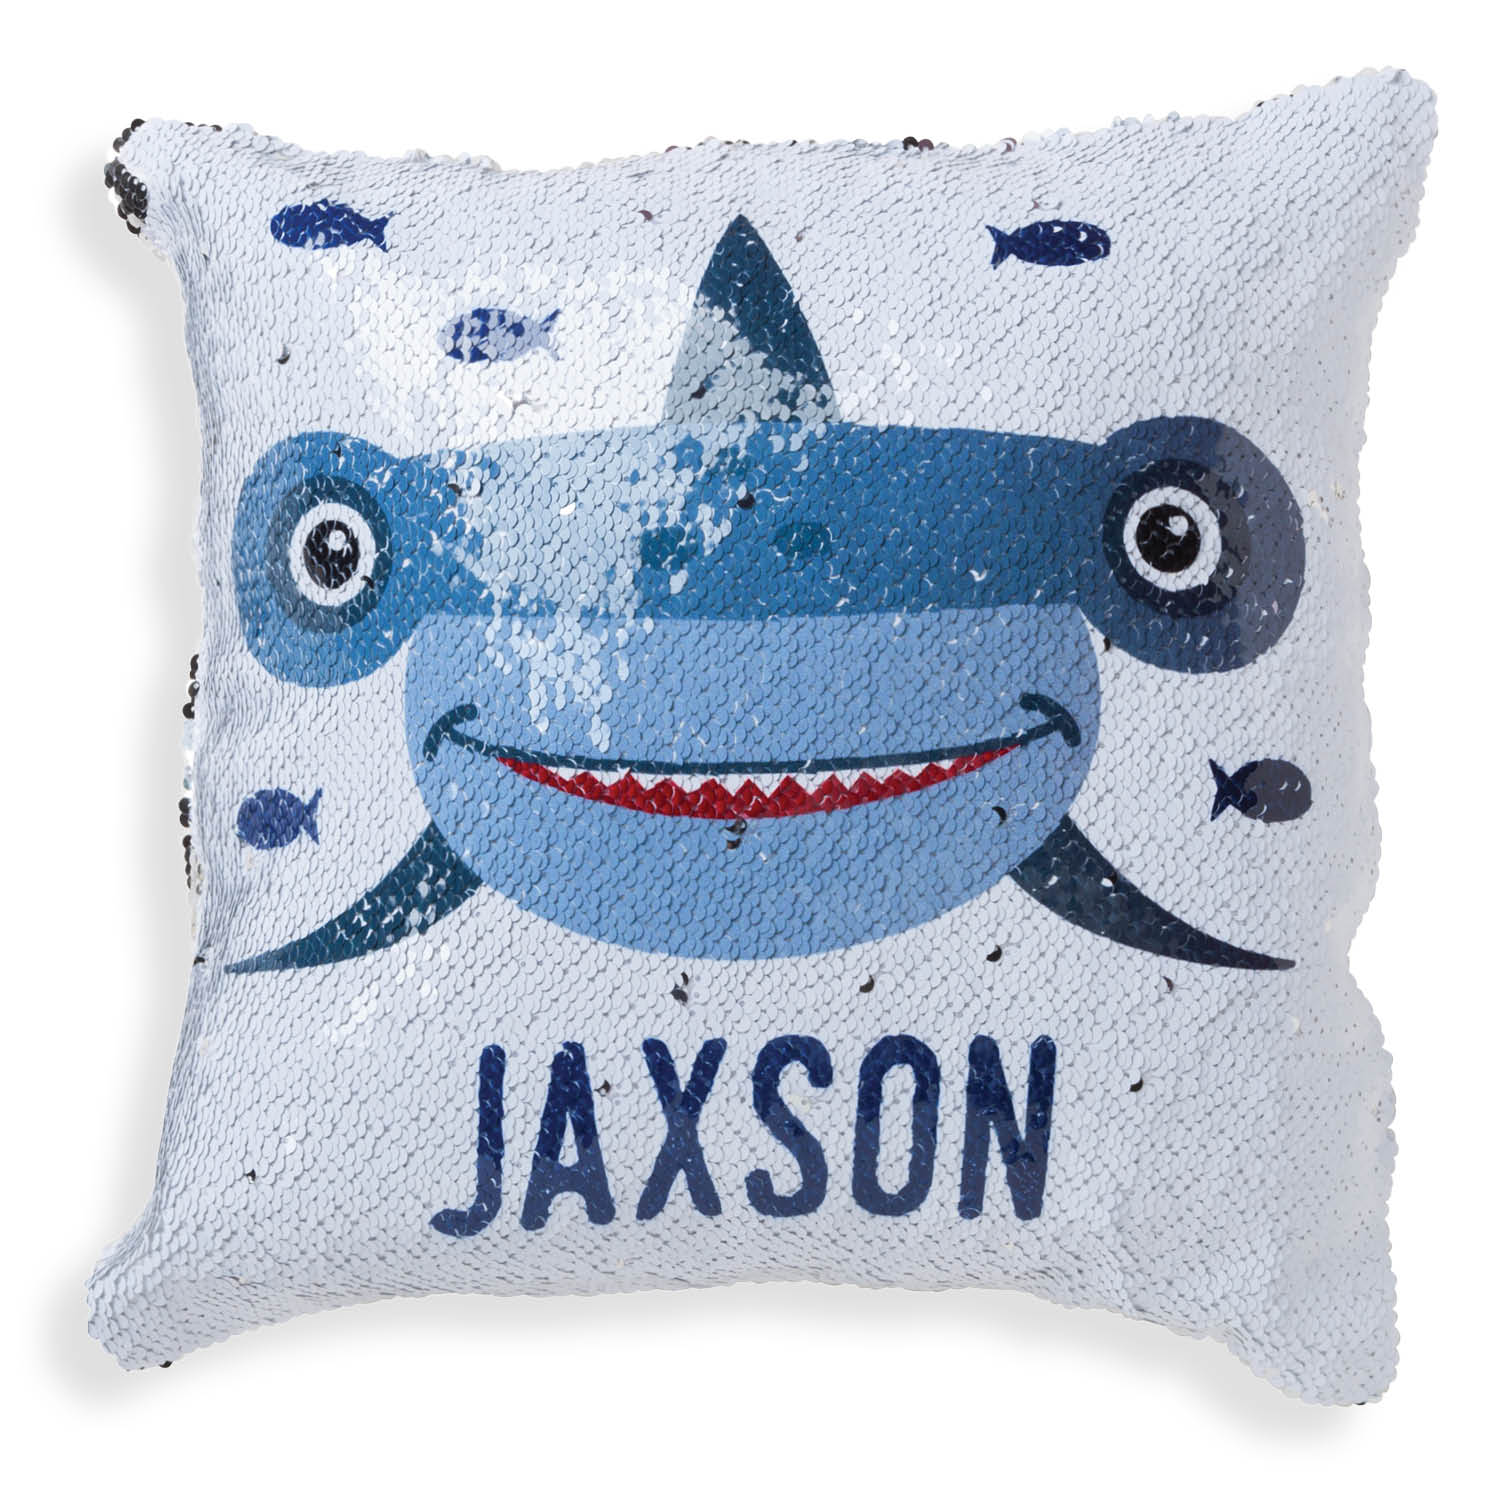 Personalized Reversible Silver Sequin Shark Pillow - 16x16